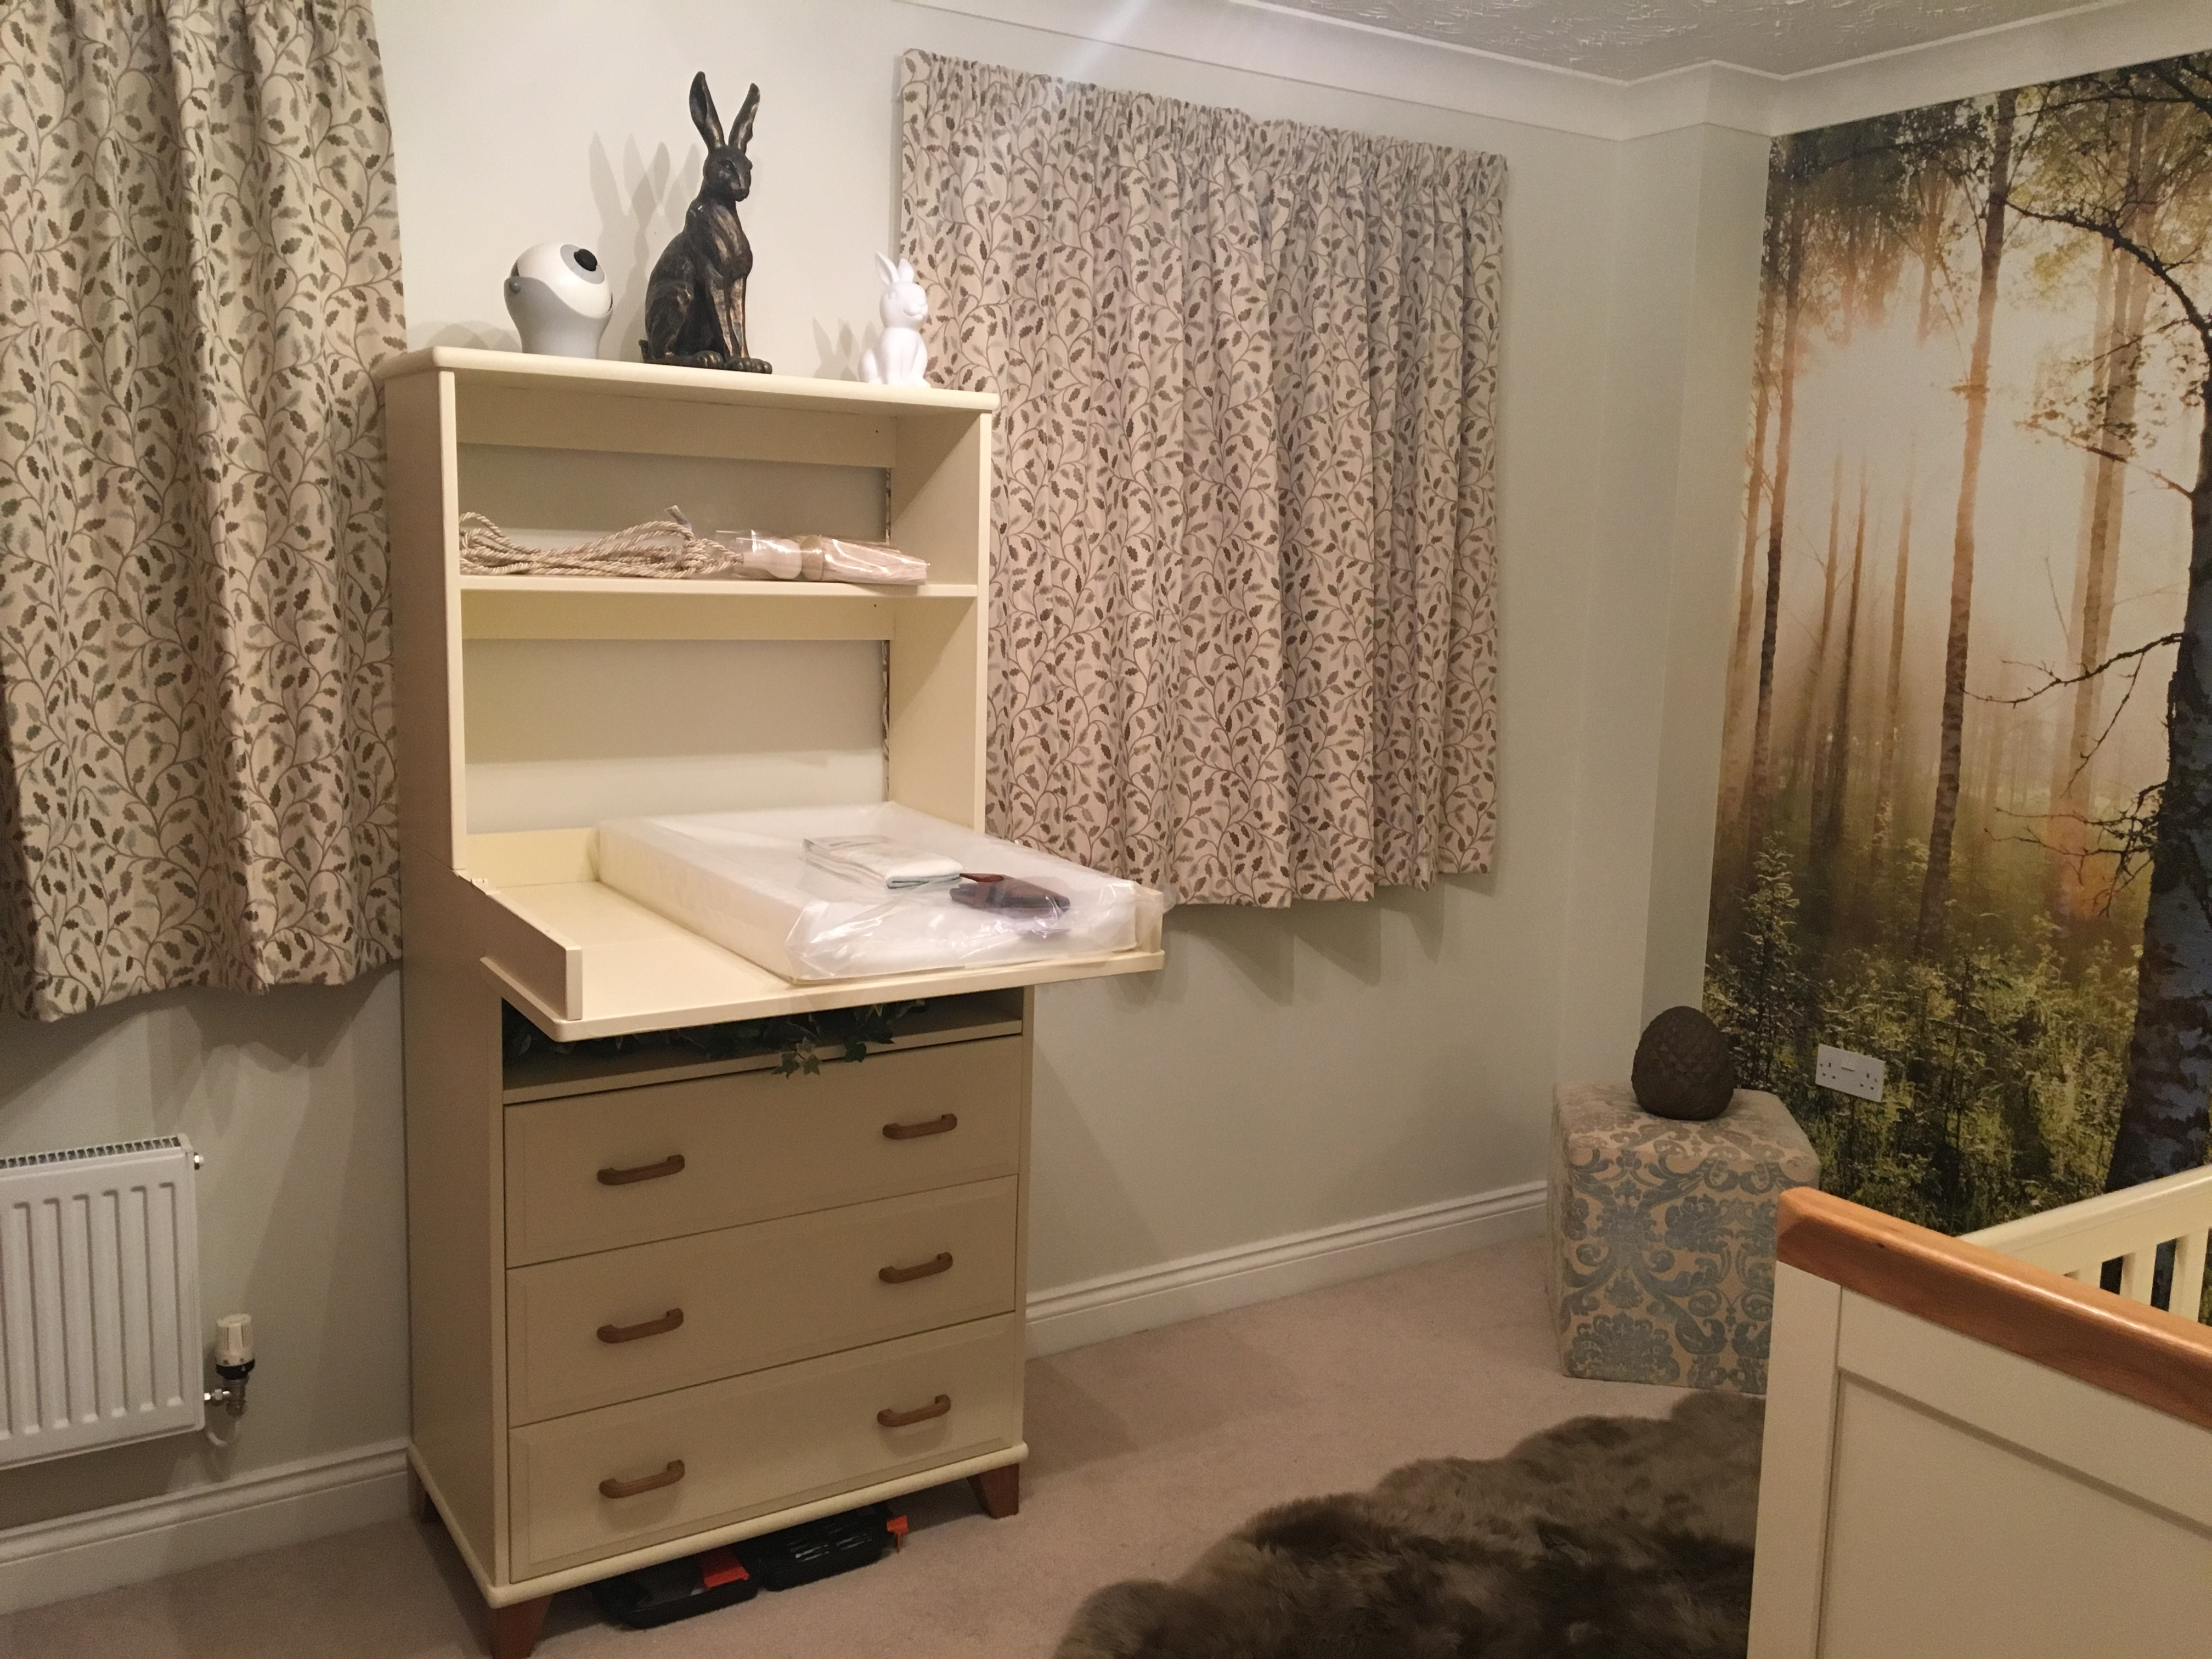 Customised 12 year old IKEA Changing table